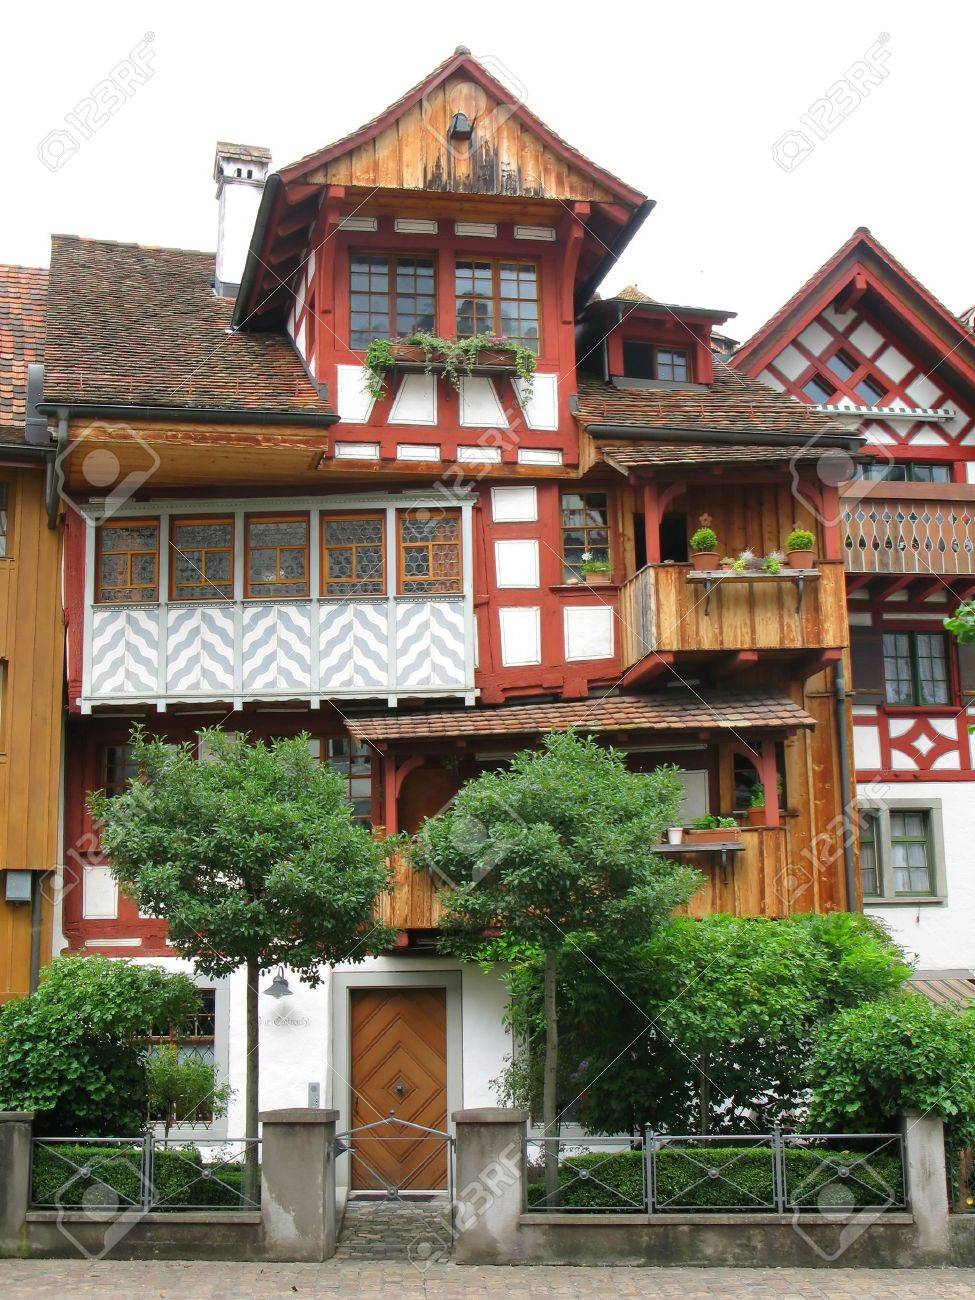 Traditional Swiss House In Arbon Canton Thurgau Stock Photo